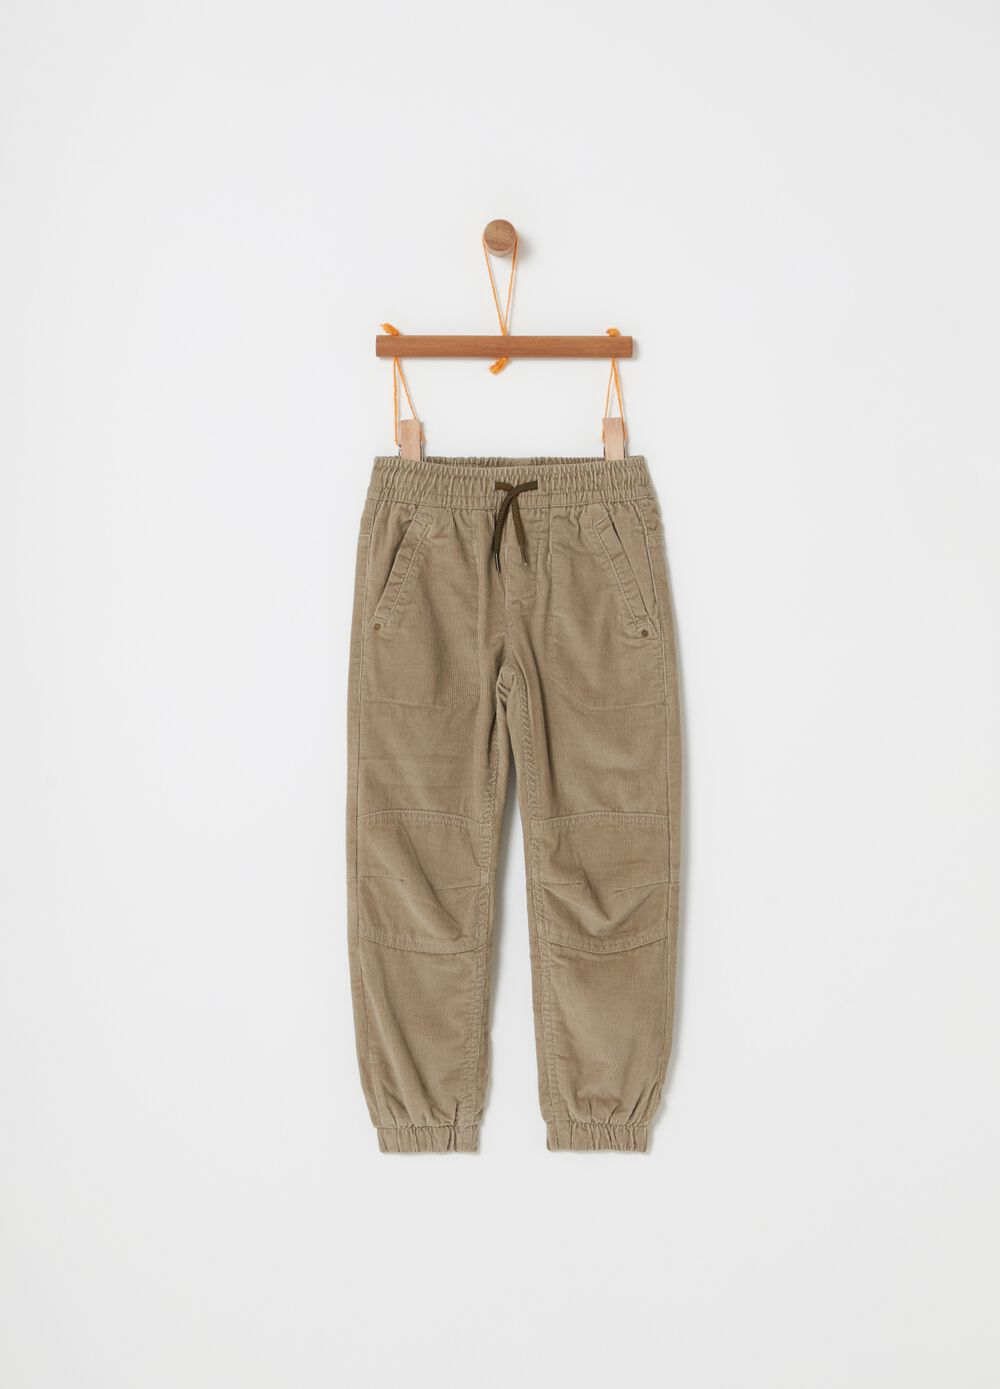 Ribbed jogger trousers in 100% cotton